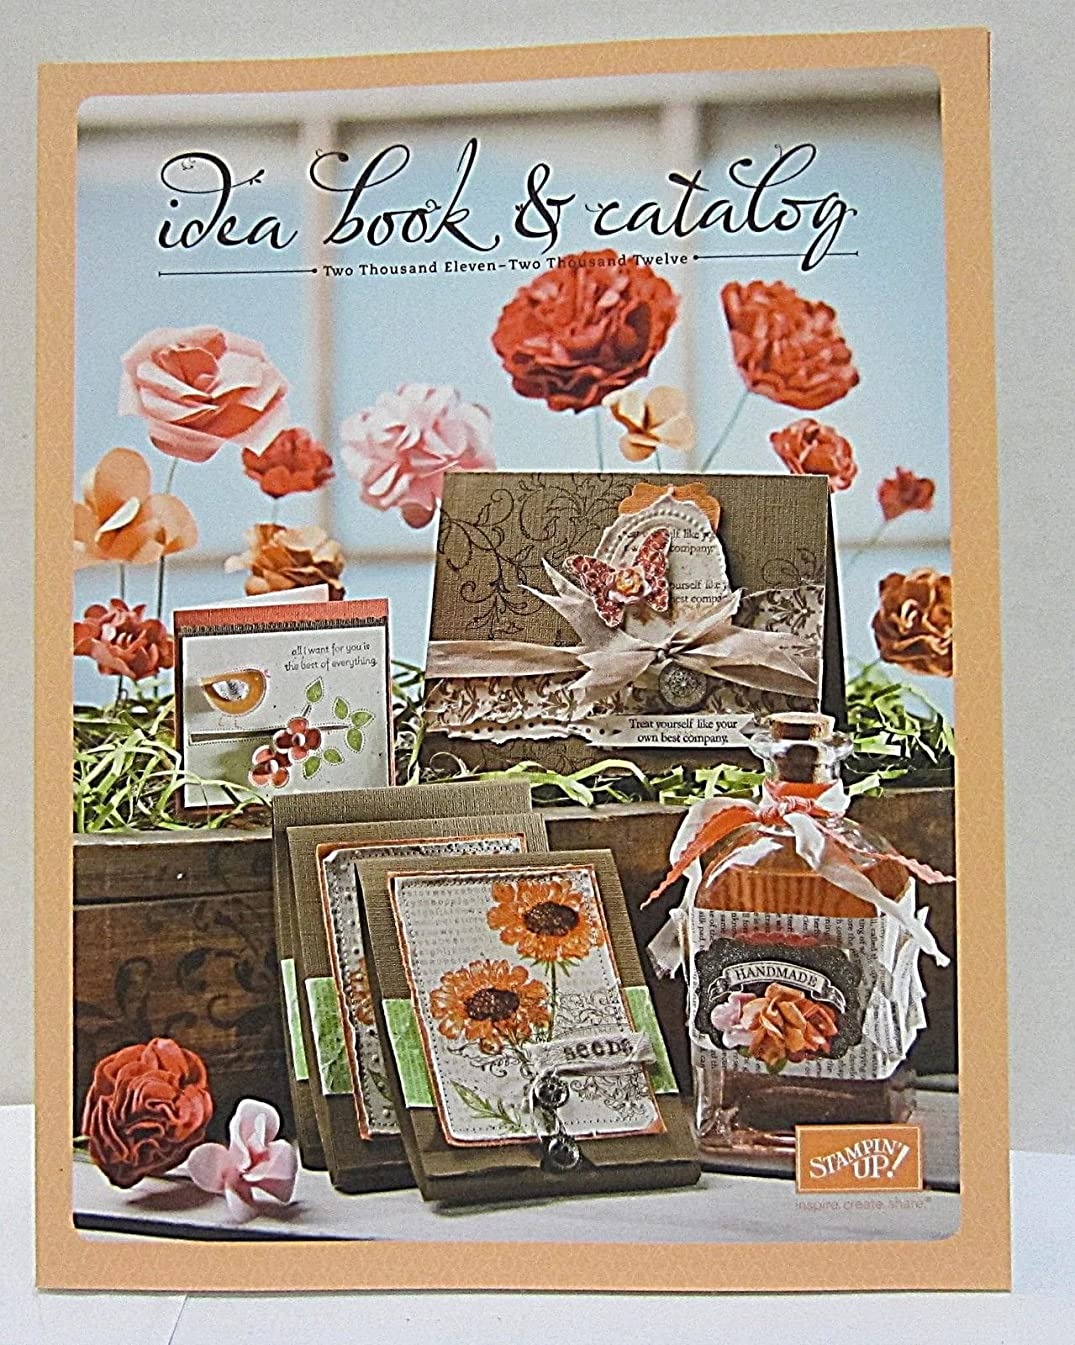 Stampin Up Idea Book & Catalog 2011-2012 New Condition 241 Pages supplier_mycollegefund2017